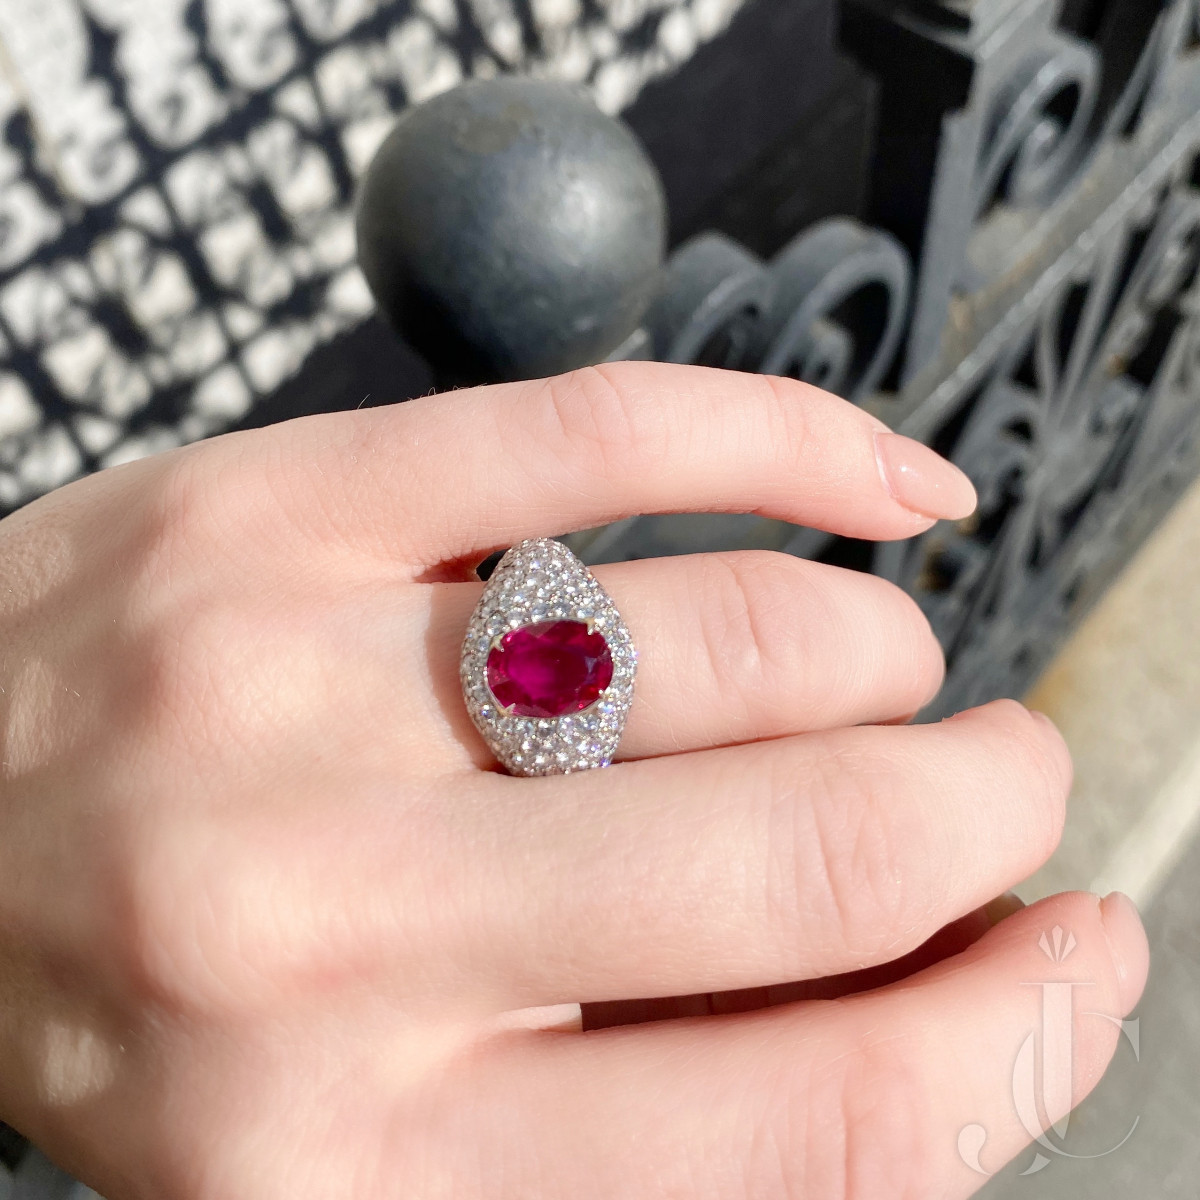 3.09 Carat Unheated Mozambique Ruby Ring, set in 18kt WG with Diamonds